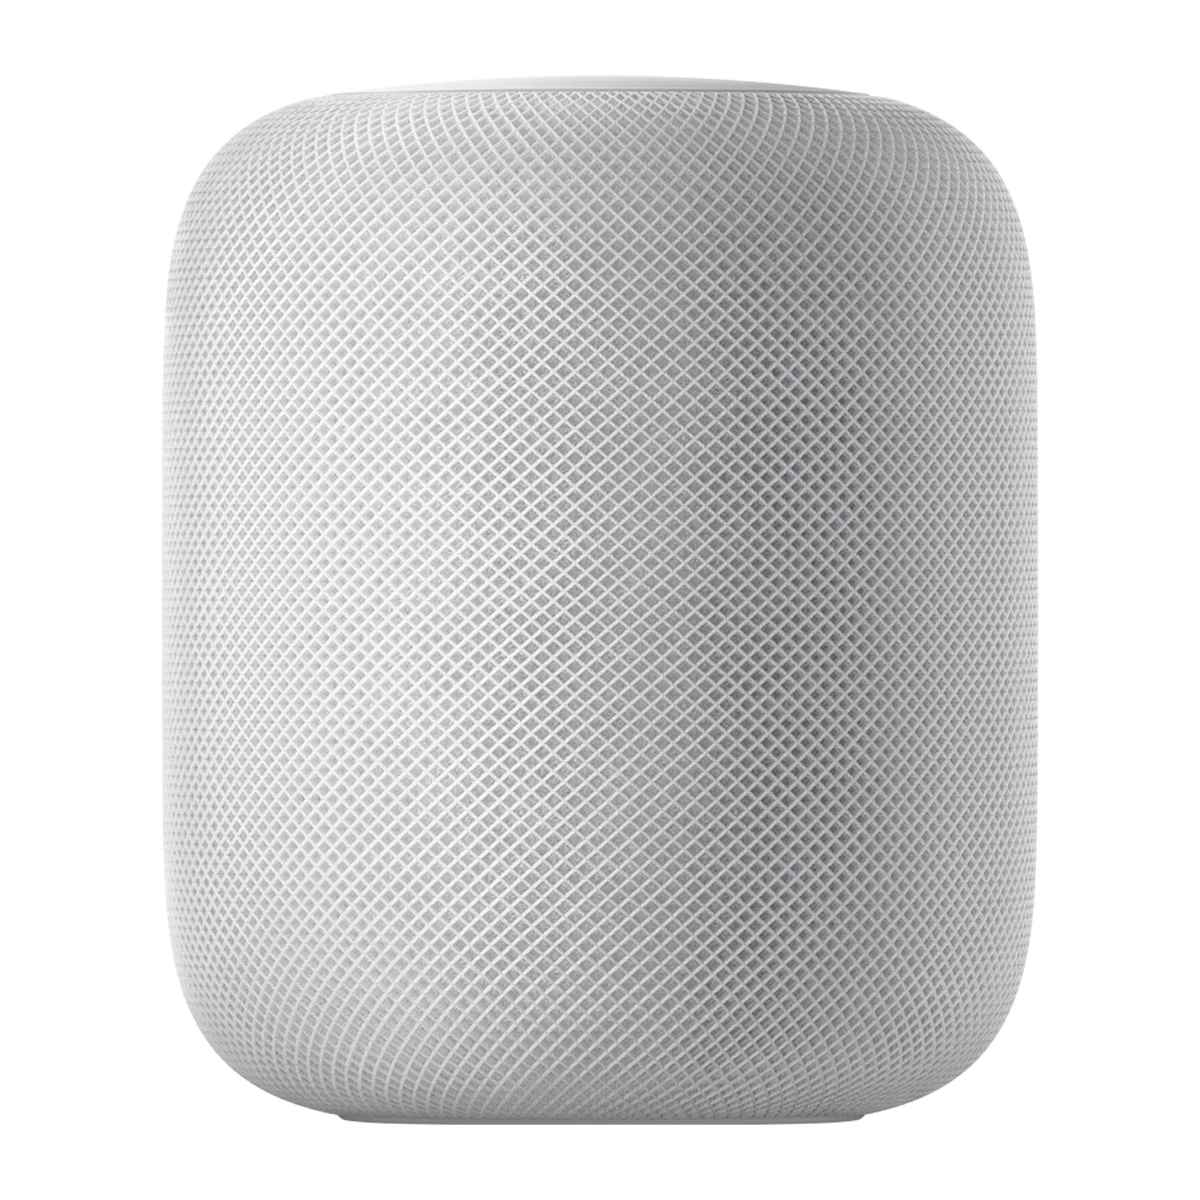 Altavoz inteligente Apple™ HomePod Blanco Bluetooth Apple™ Music y Siri